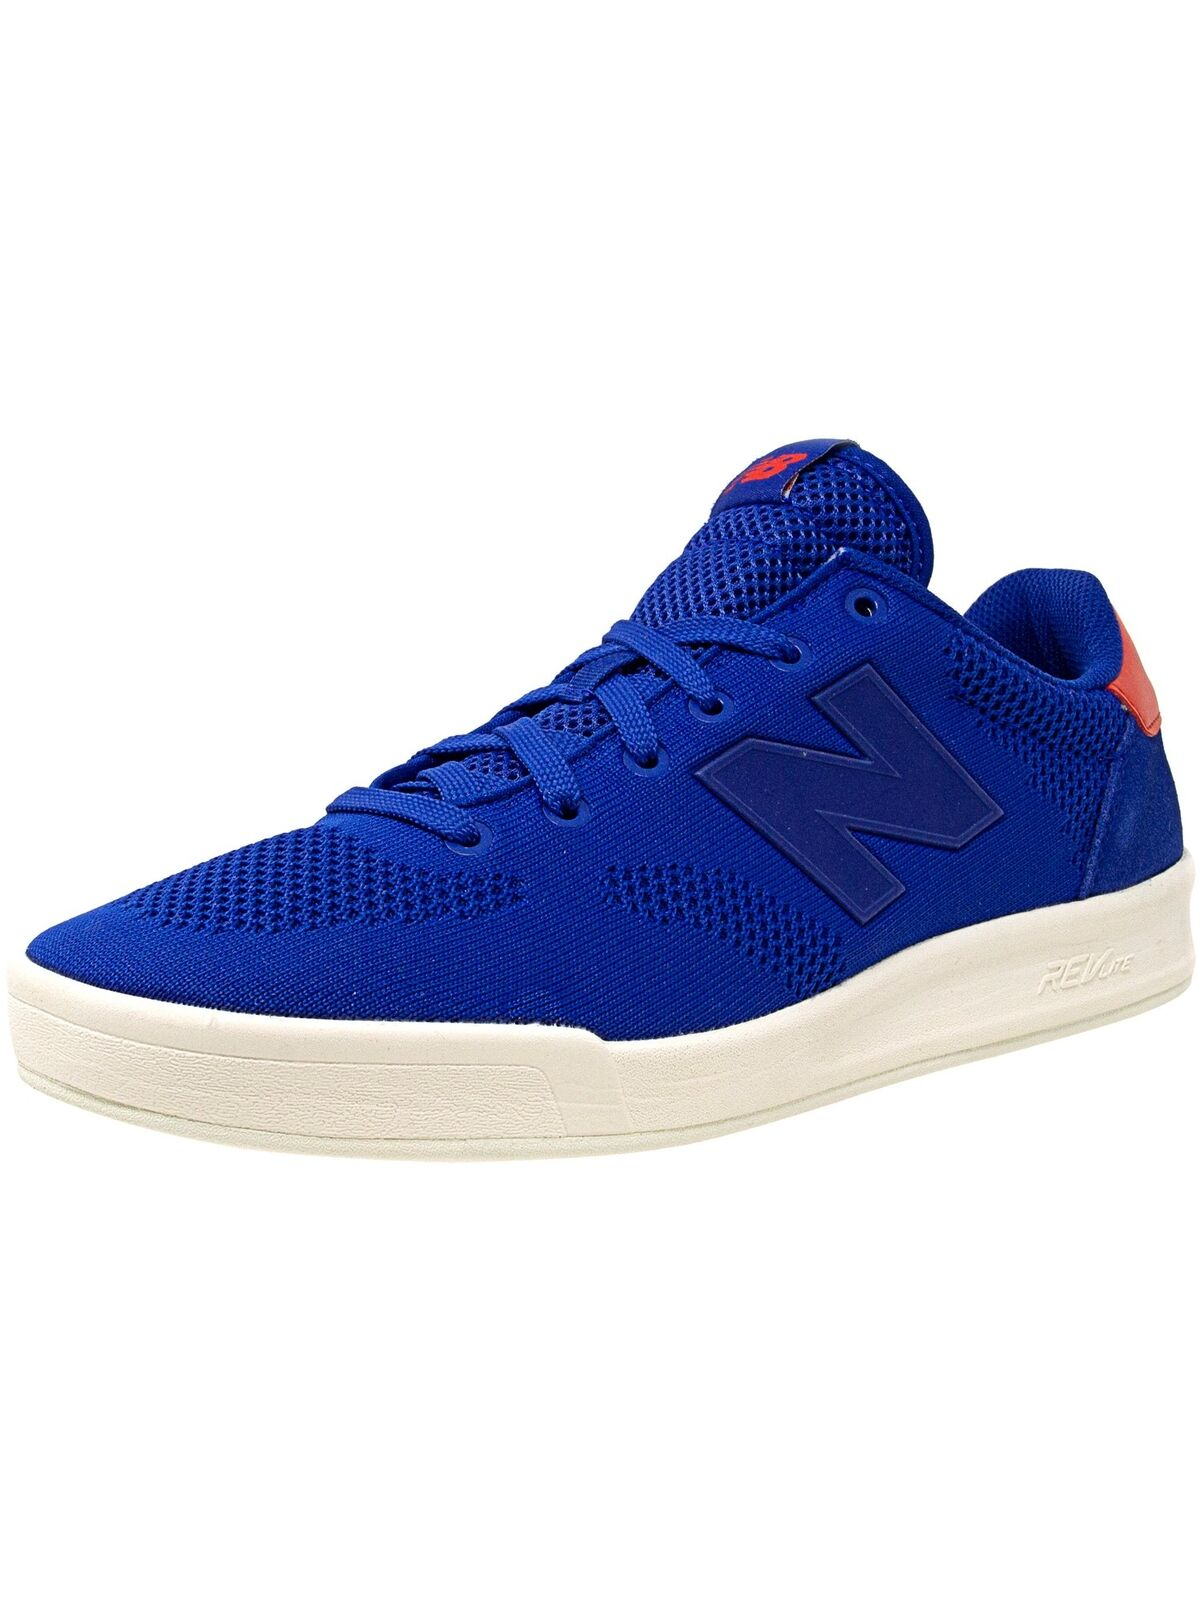 New Balance Men's Crt300 Ankle-High Tennis shoes